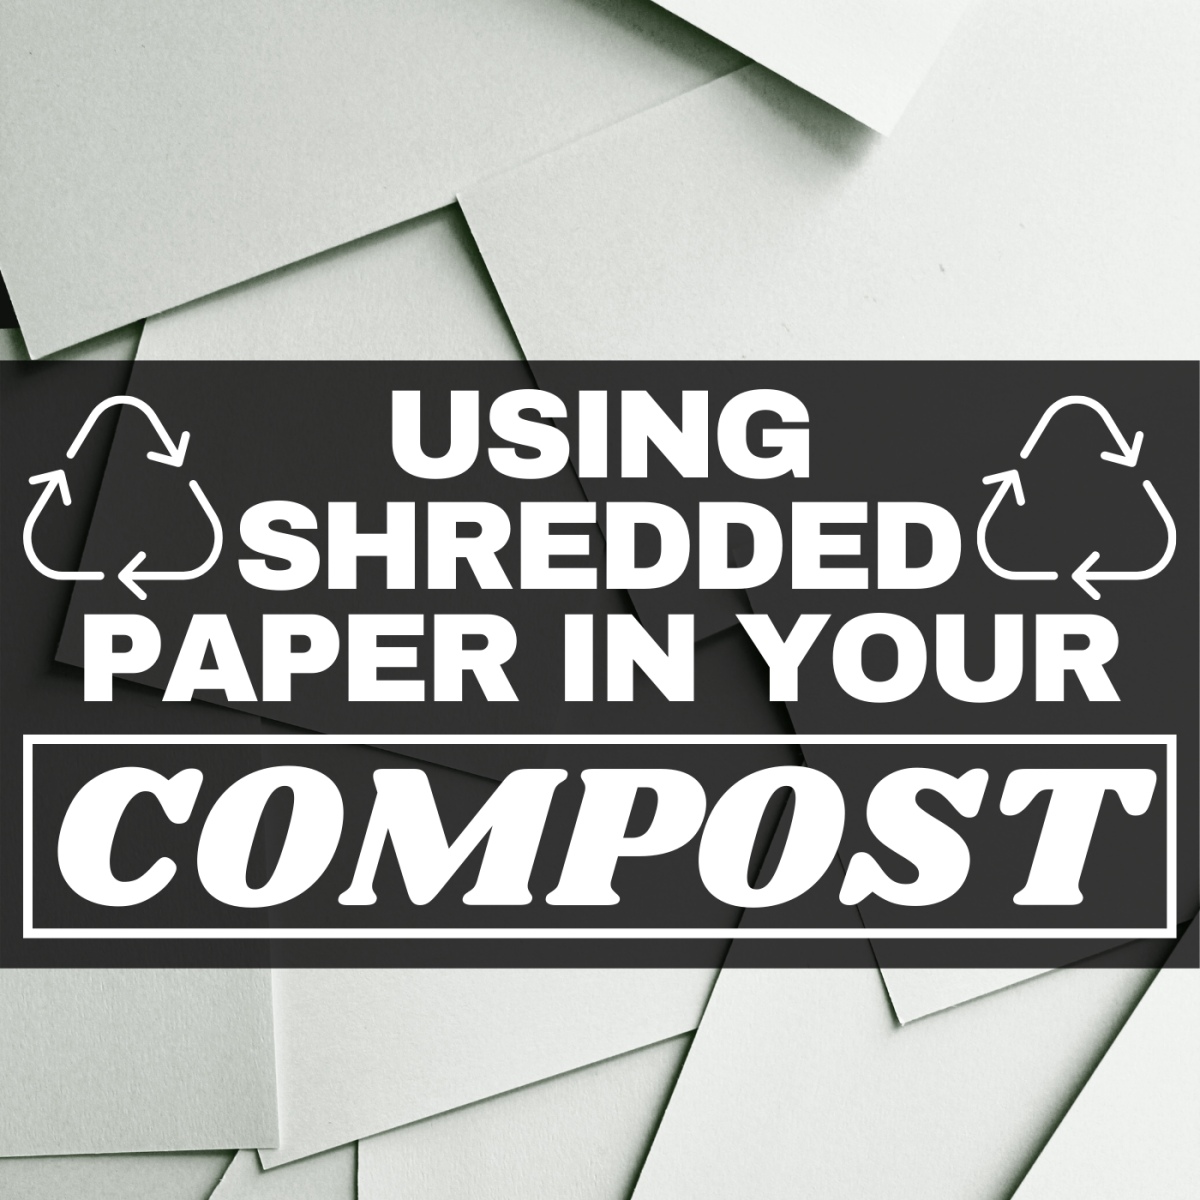 You might be surprised by what shredded paper can do for your compost.